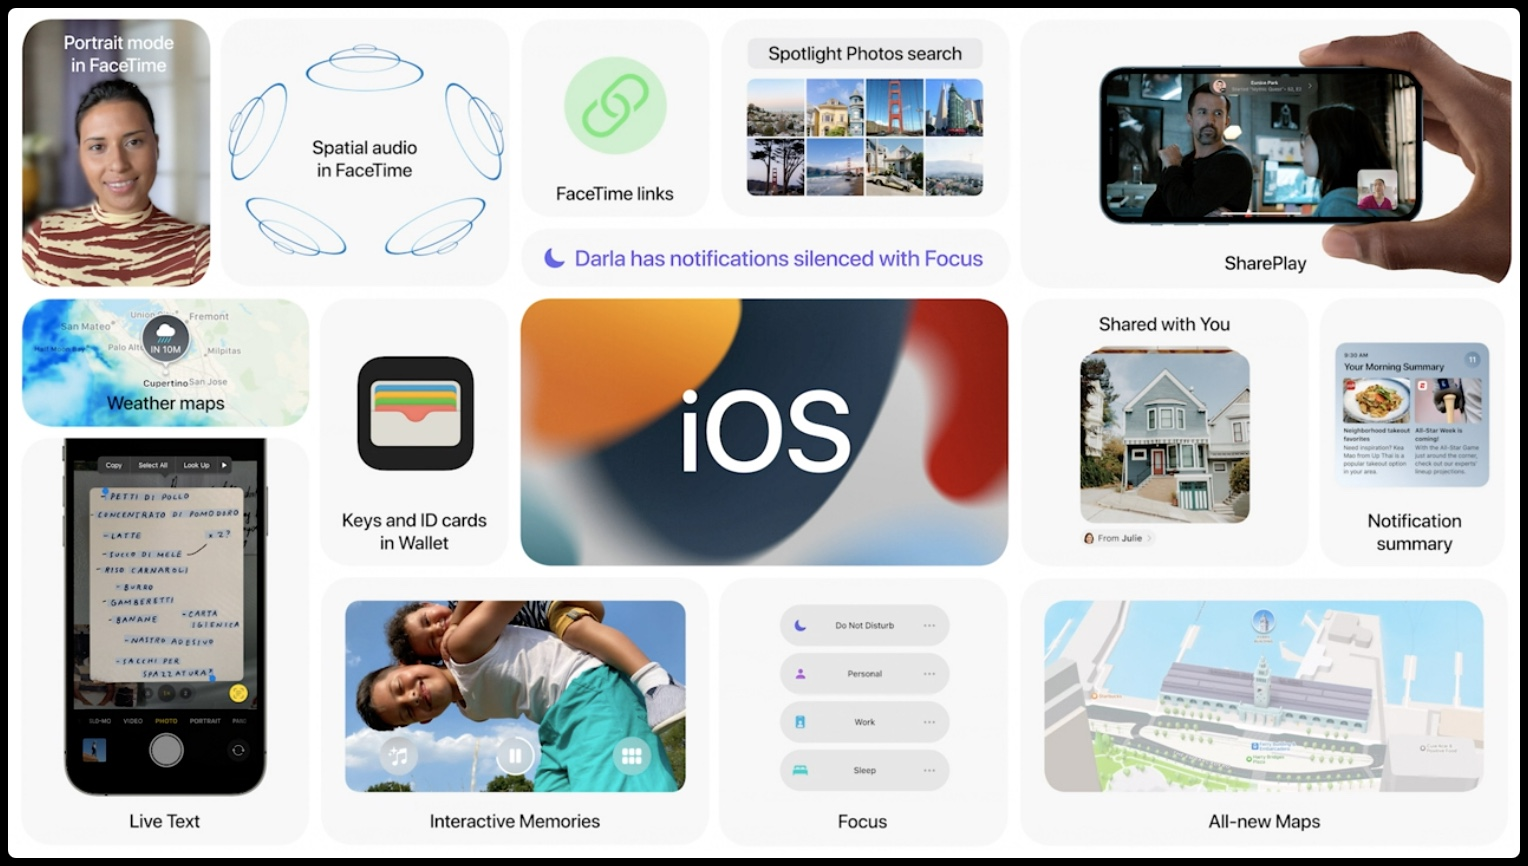 Apple's WWDC21 slide highlighting some of the best iOS 15 features